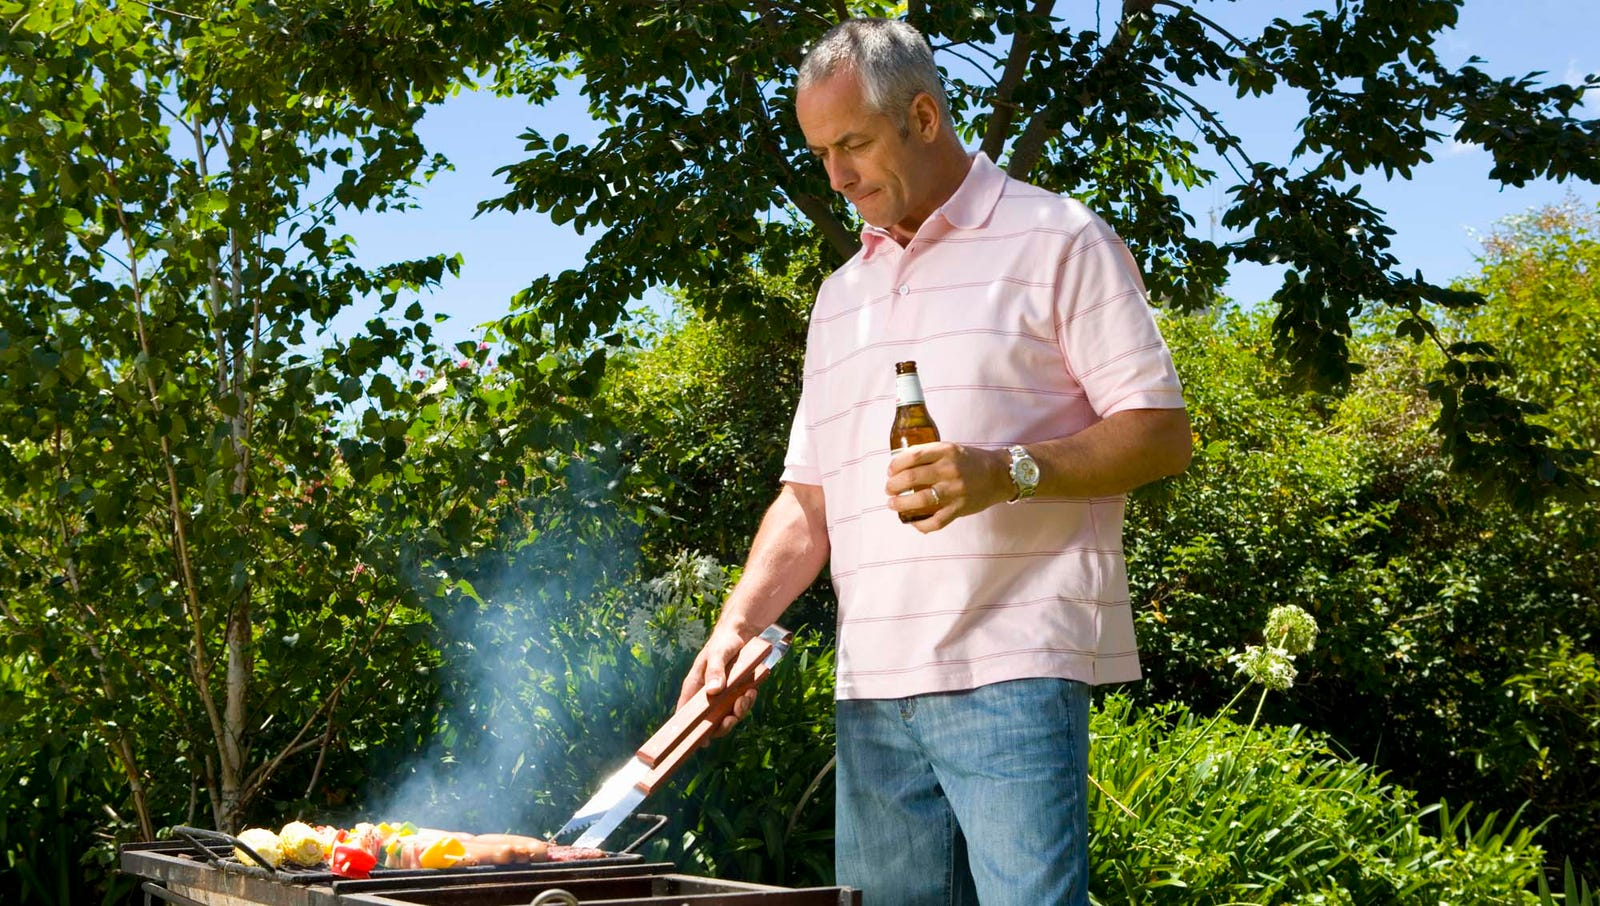 Bigoted Asshole Makes The Best Barbecue